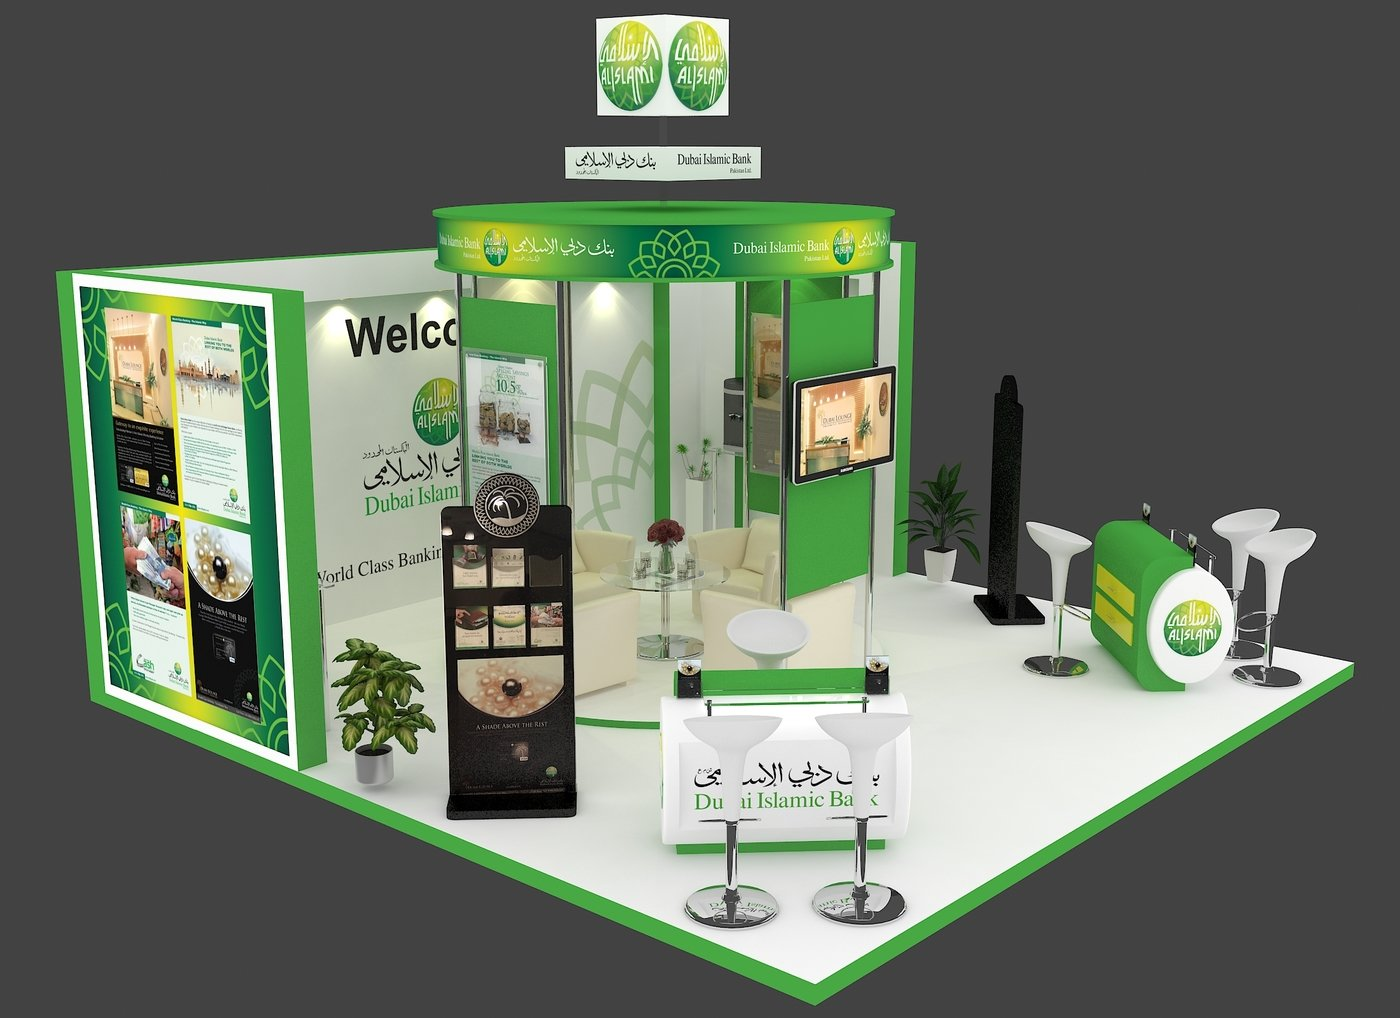 Exhibition Stall Designers In Karachi : Exhibition stall design for dubai islamic bank by umair khan at